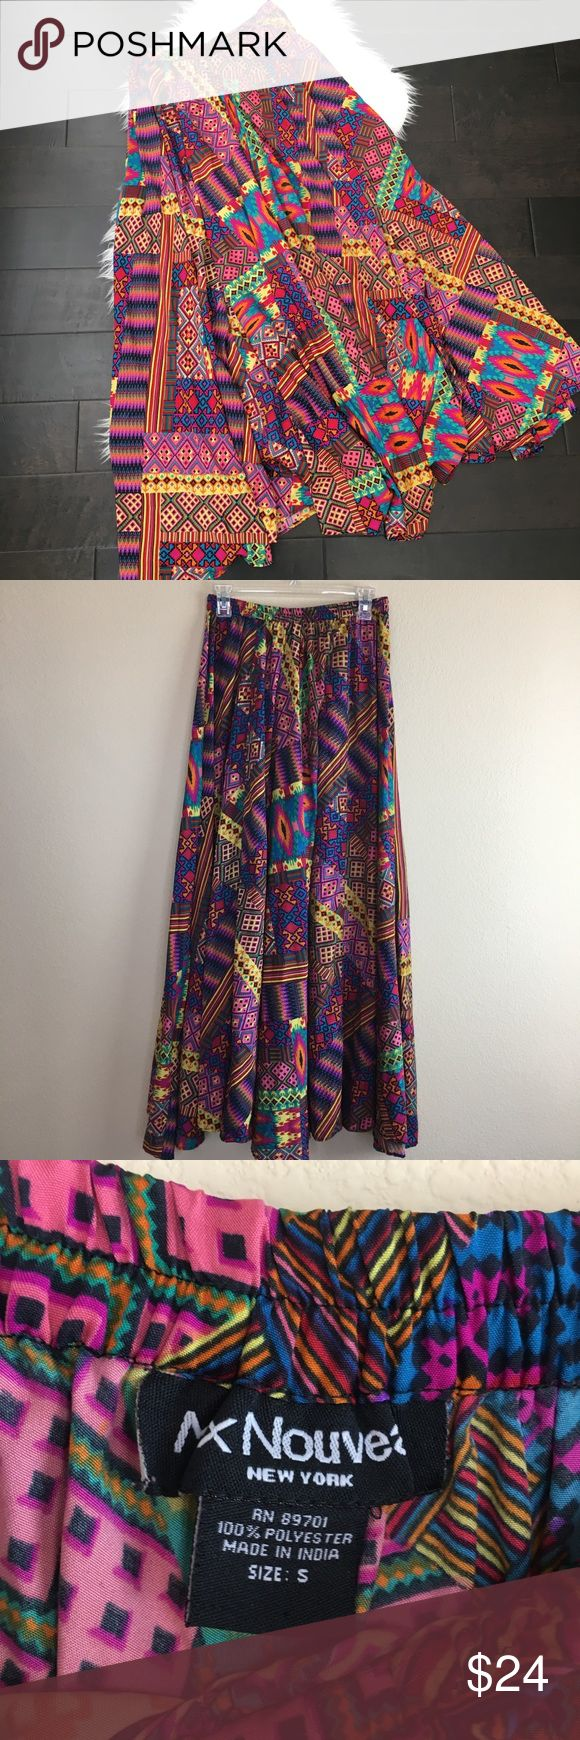 "Mix Nouvea New York Boho Maxi Multi-colored Skirt Mix Nouvea New York Boho Maxi Multi-colored Skirt. Elastic waistband.Size Small  Approximate measurements laying flat  •waistband:13.5"" •length:44"" •condition: Preowned gently used condition Mix Nouvea New York Skirts Maxi"